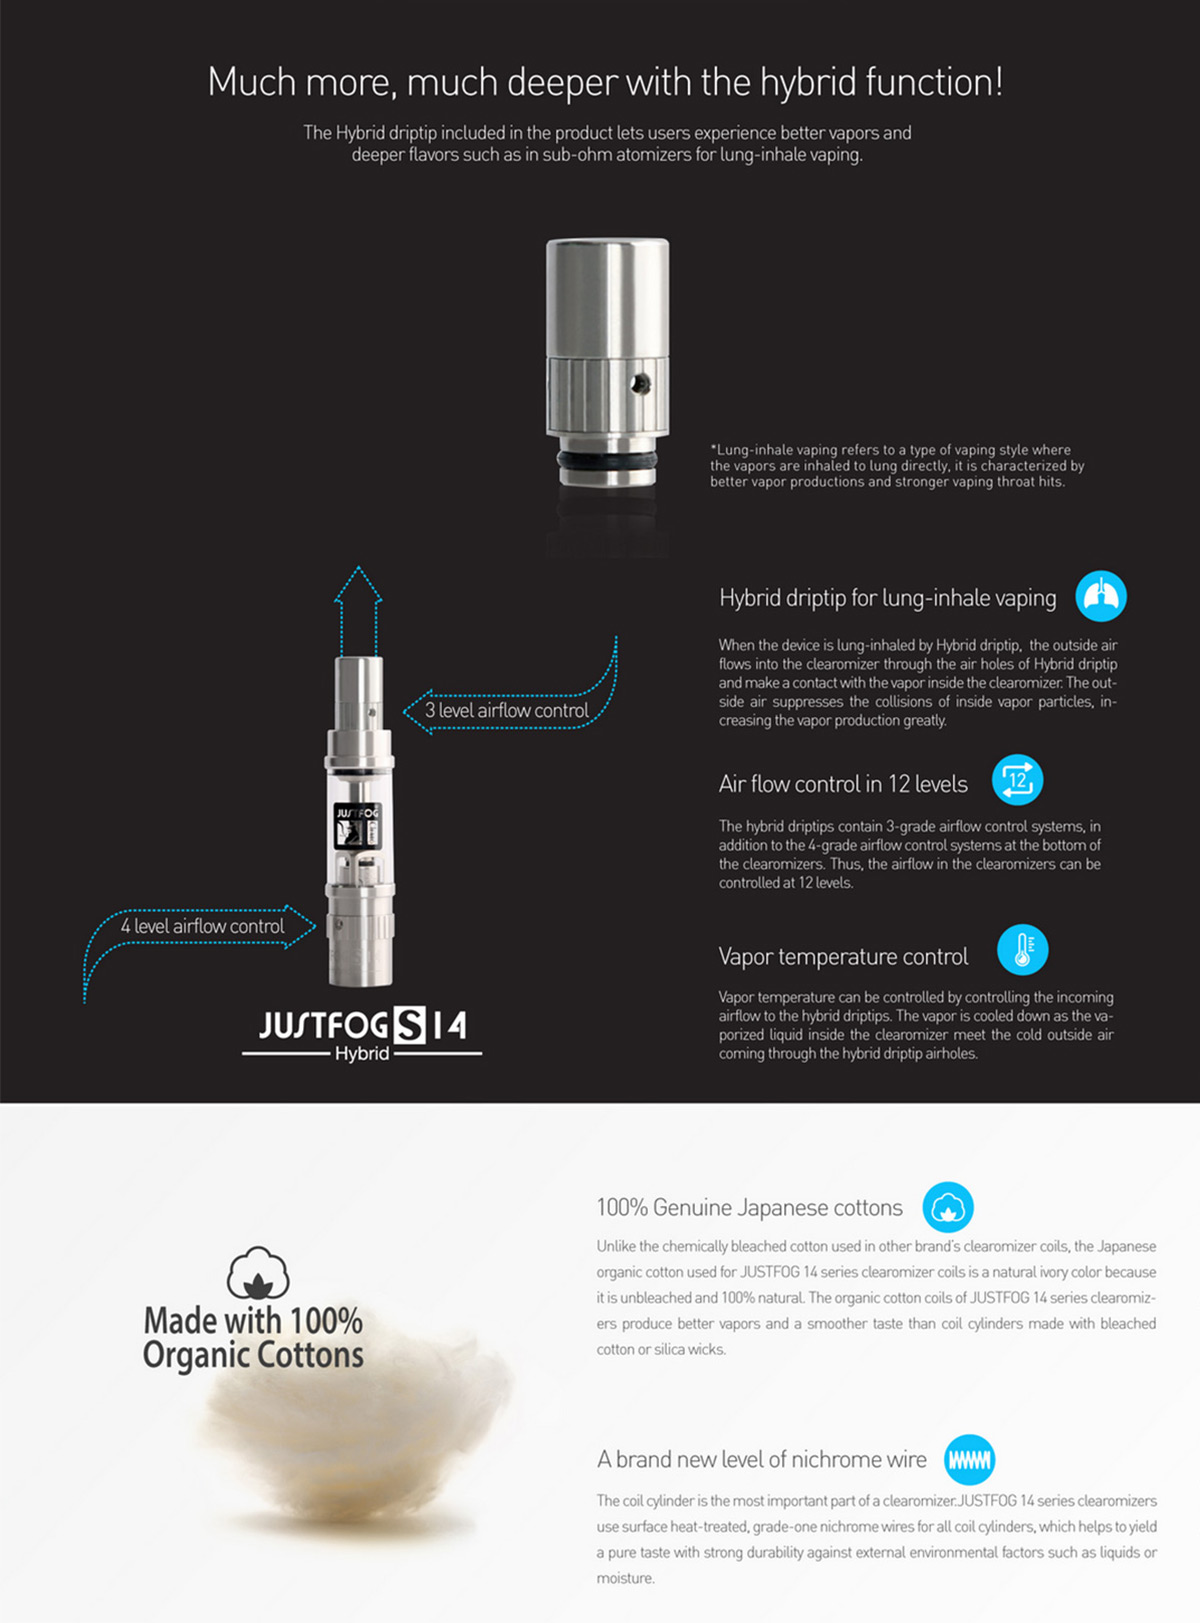 Justfog S14 Hybrid Clearomizer 2152 Free Shipping Inhale Style Mosquito Killer Lamp Electric Circuit This Item Is Not Shipped To Korea Due Local Laws Any Order Will Be Cancelled Automatically Without Further Notice